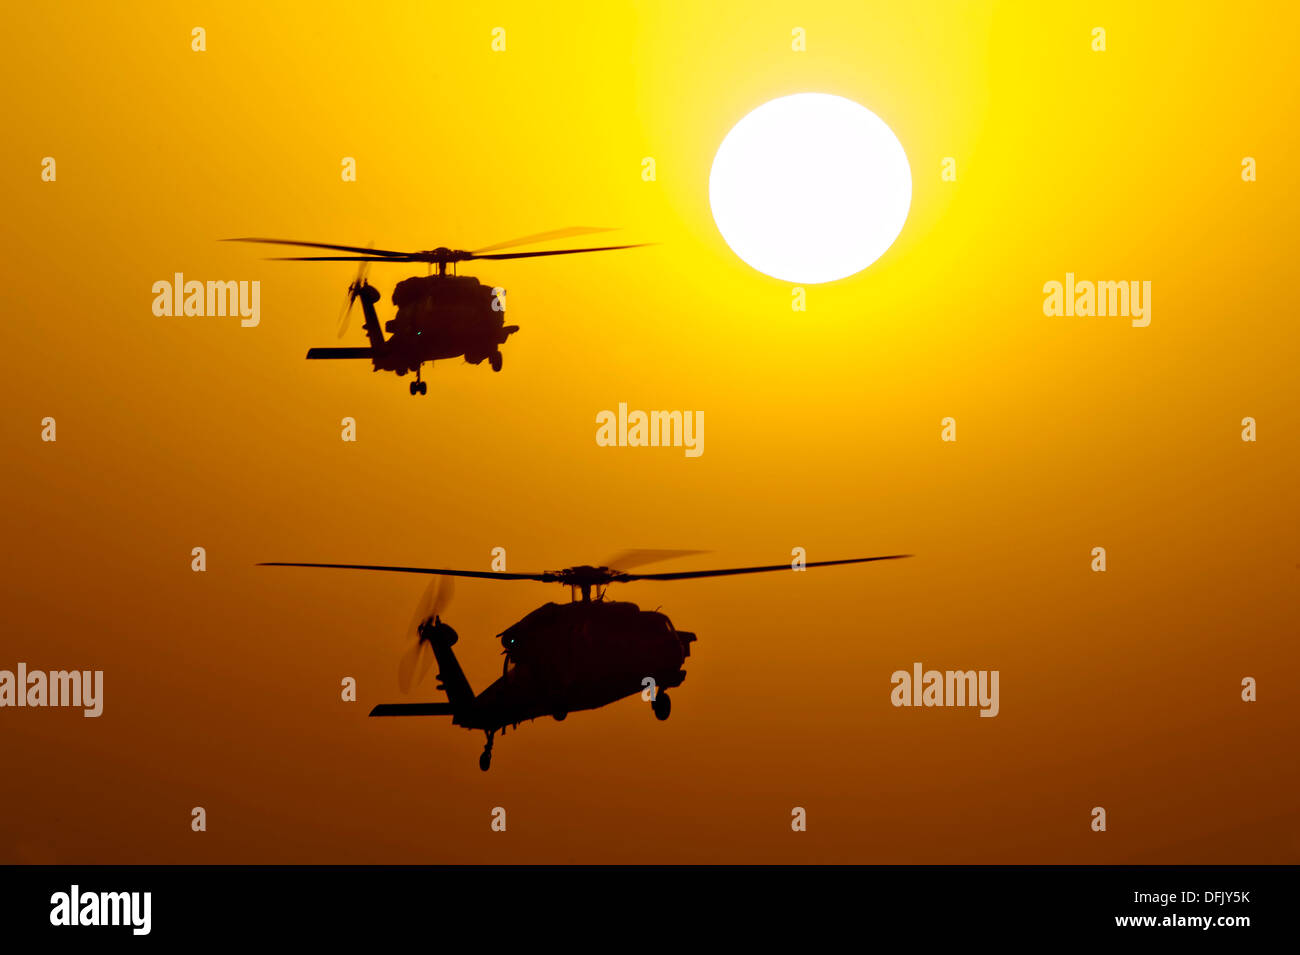 US Navy MH-60S Knighthawk helicopters are silhouetted by the setting sun as they patrol near the aircraft carrier - Stock Image